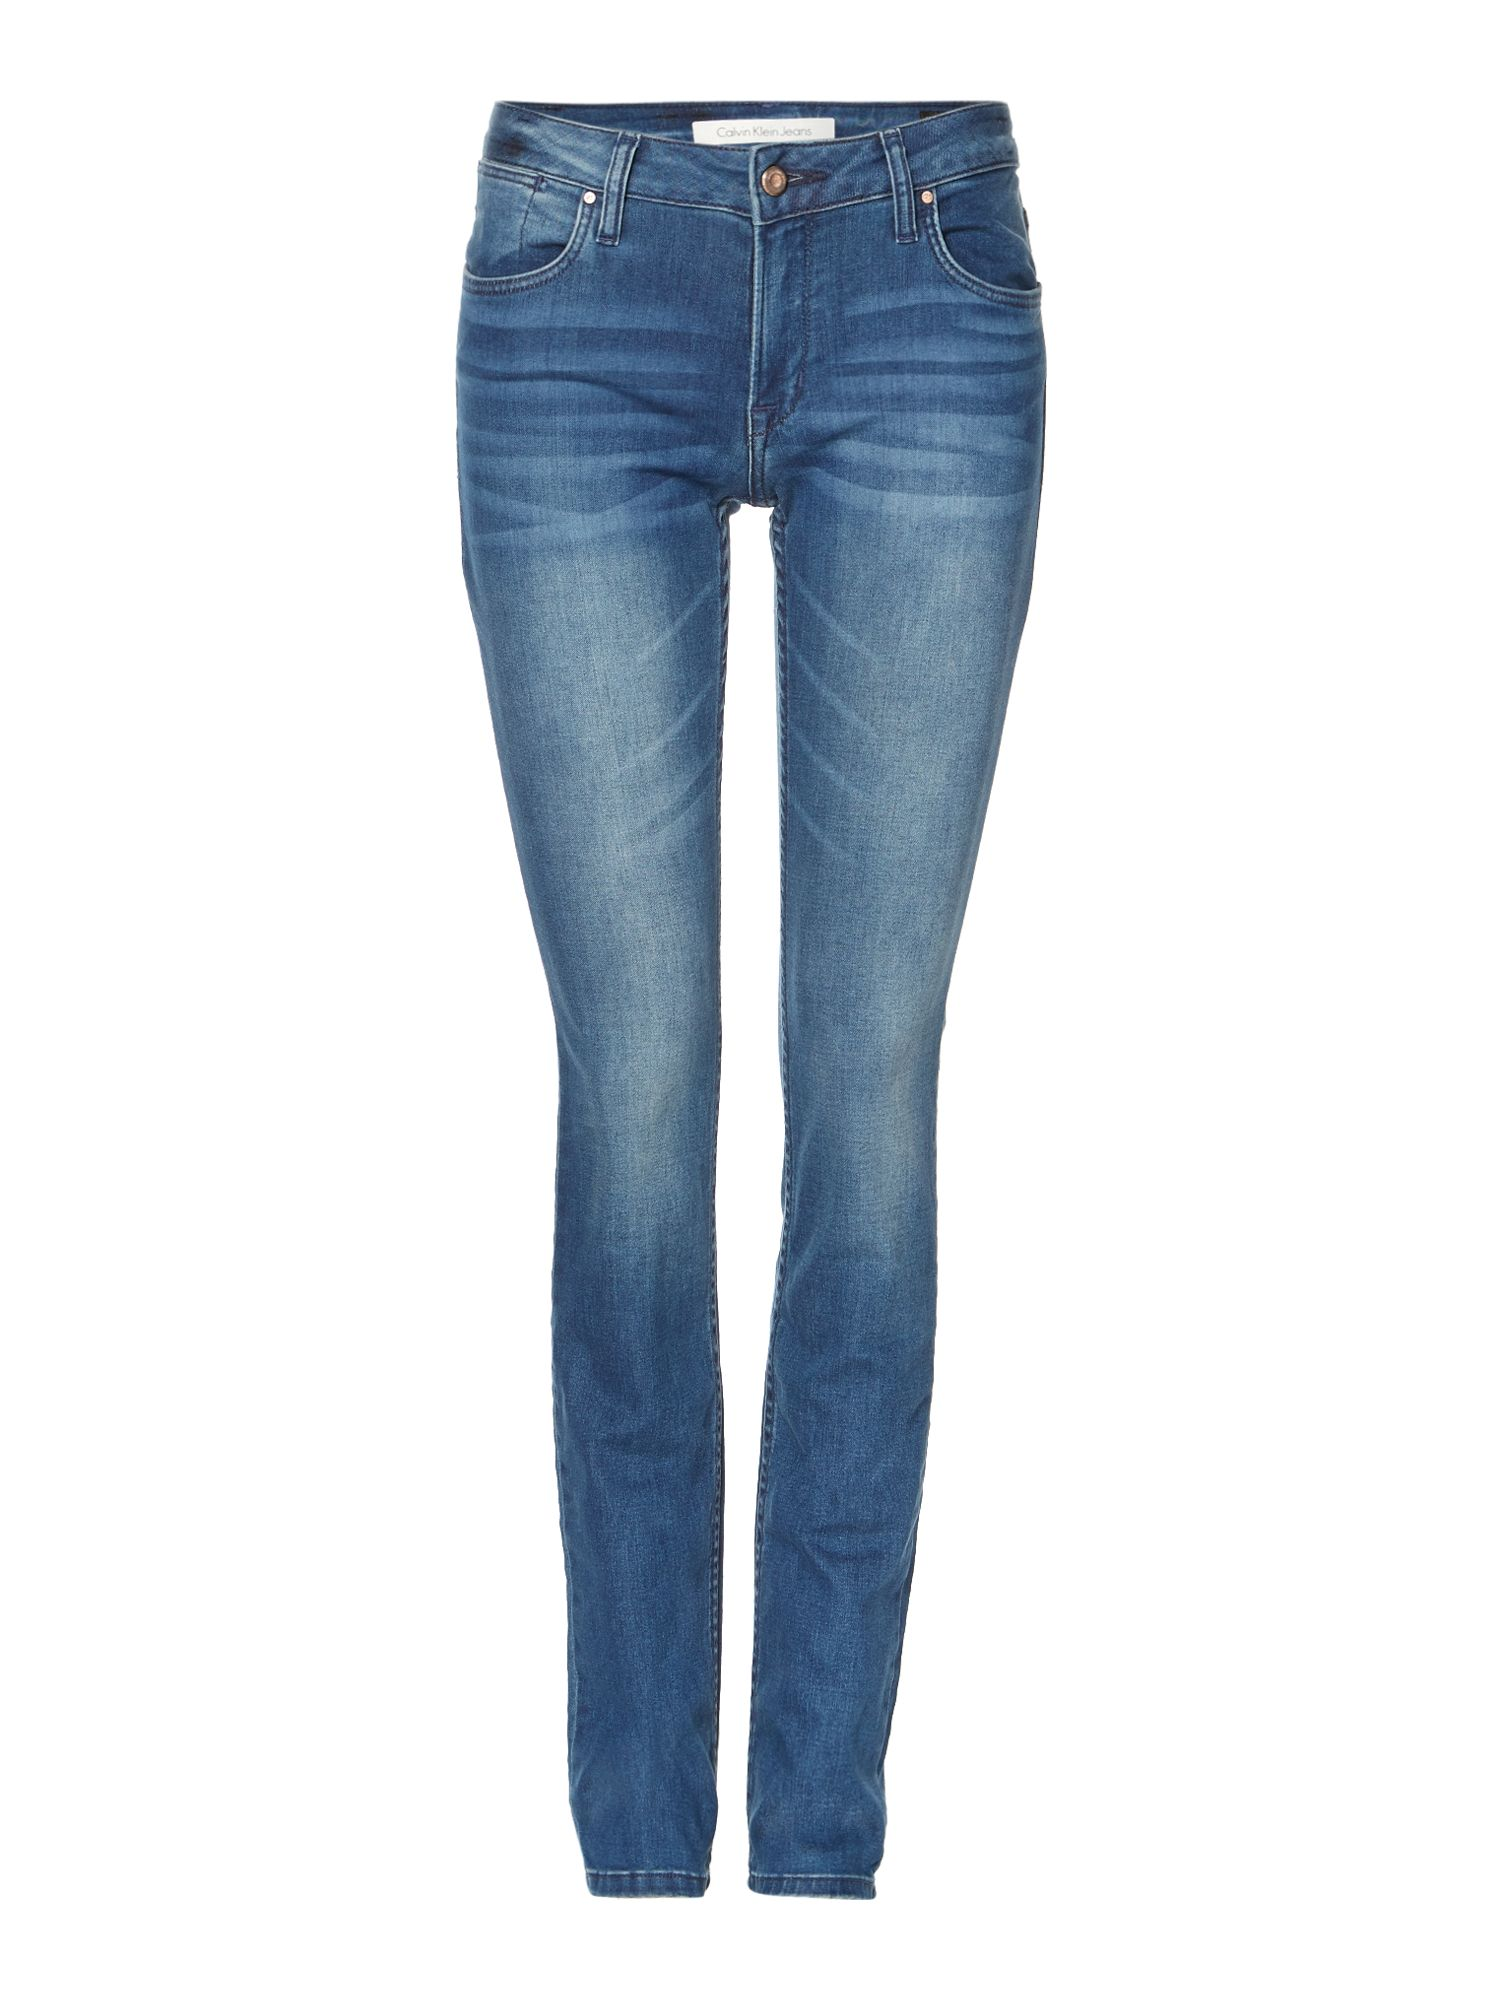 Slim mid rise pencil leg